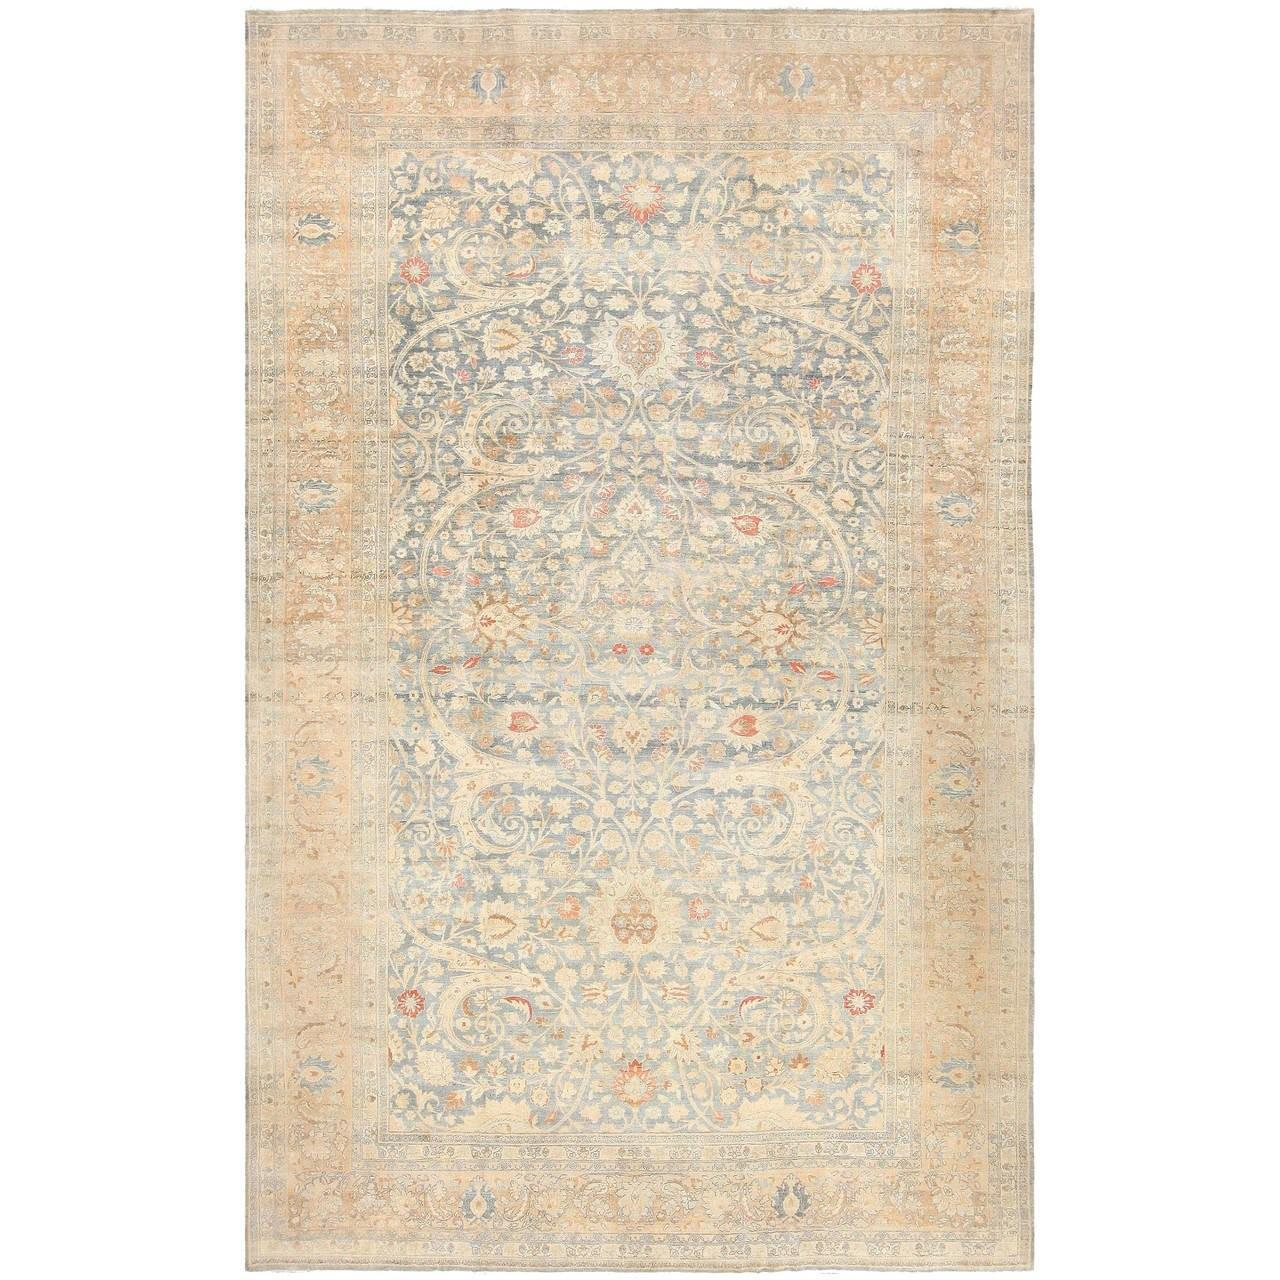 Beautiful Rugs Light Colored Antique Persian